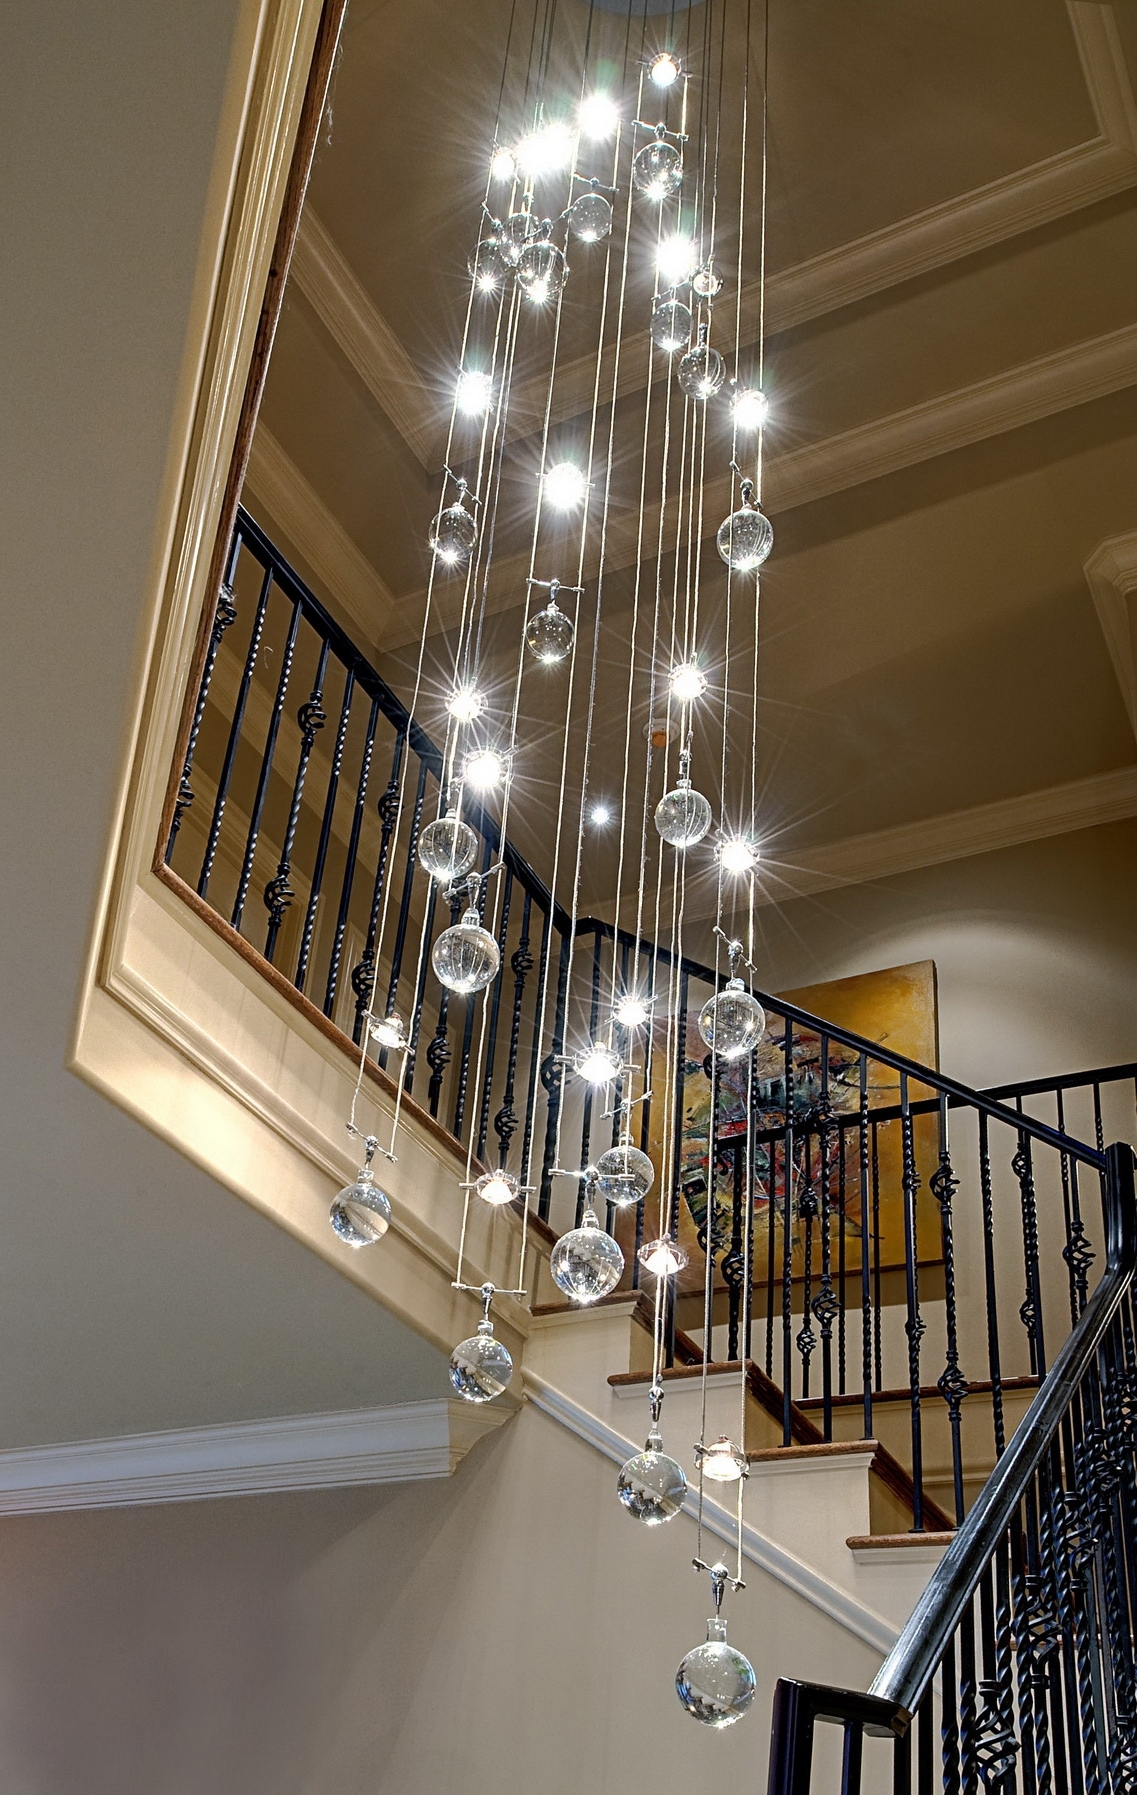 Well Liked Interior: Modern Chandeliers For High Ceiling With Sparkly Crystals Pertaining To Sparkly Chandeliers (View 13 of 15)